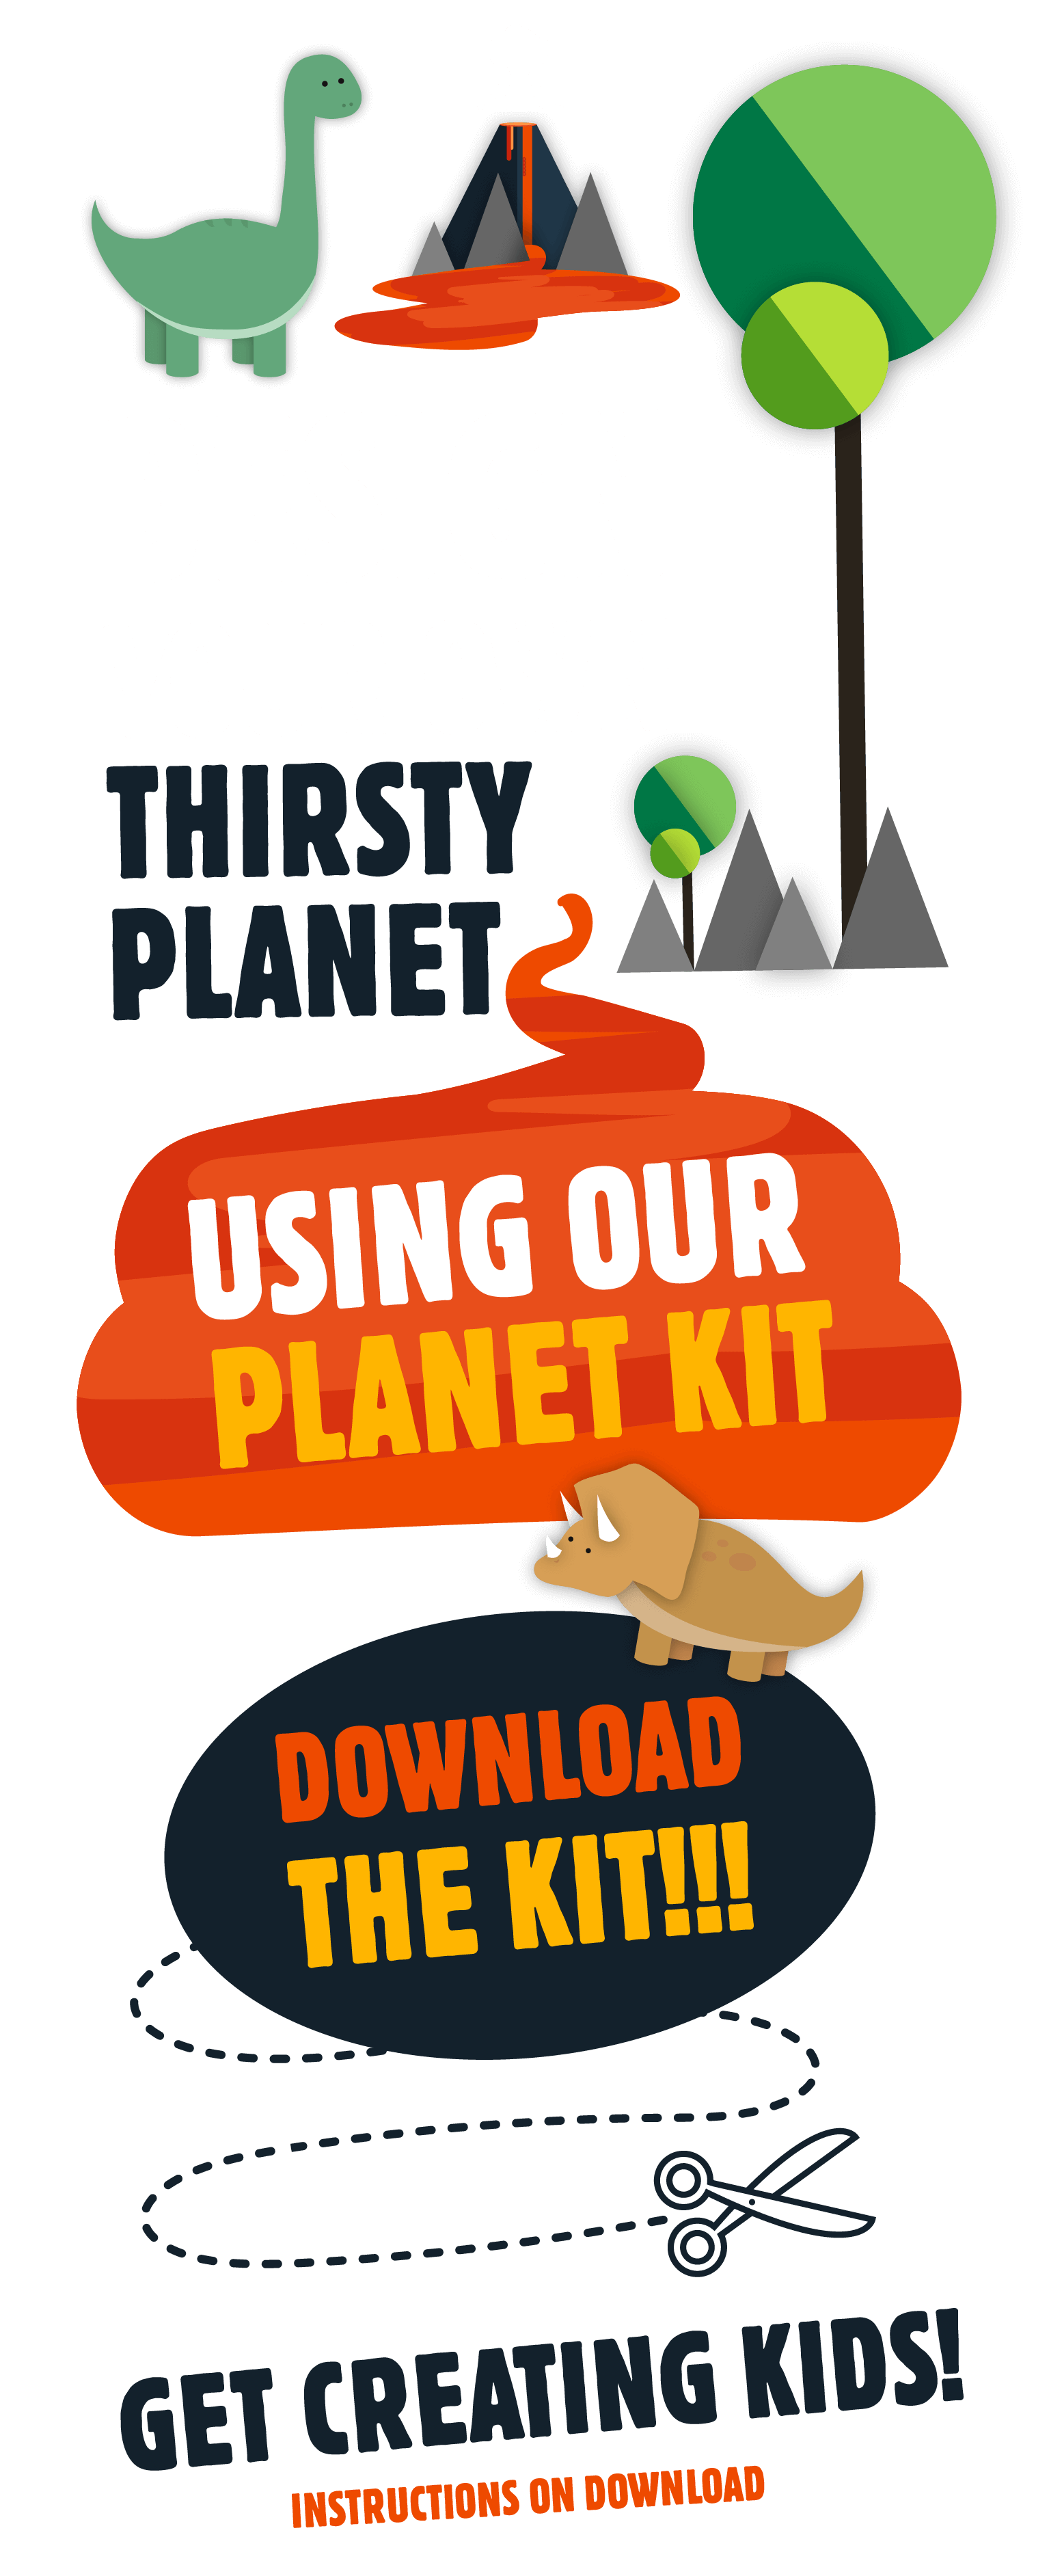 Design your own Thirsty Planet using our planet kit. Download the kit!! Get creating Kids! instructions on download.